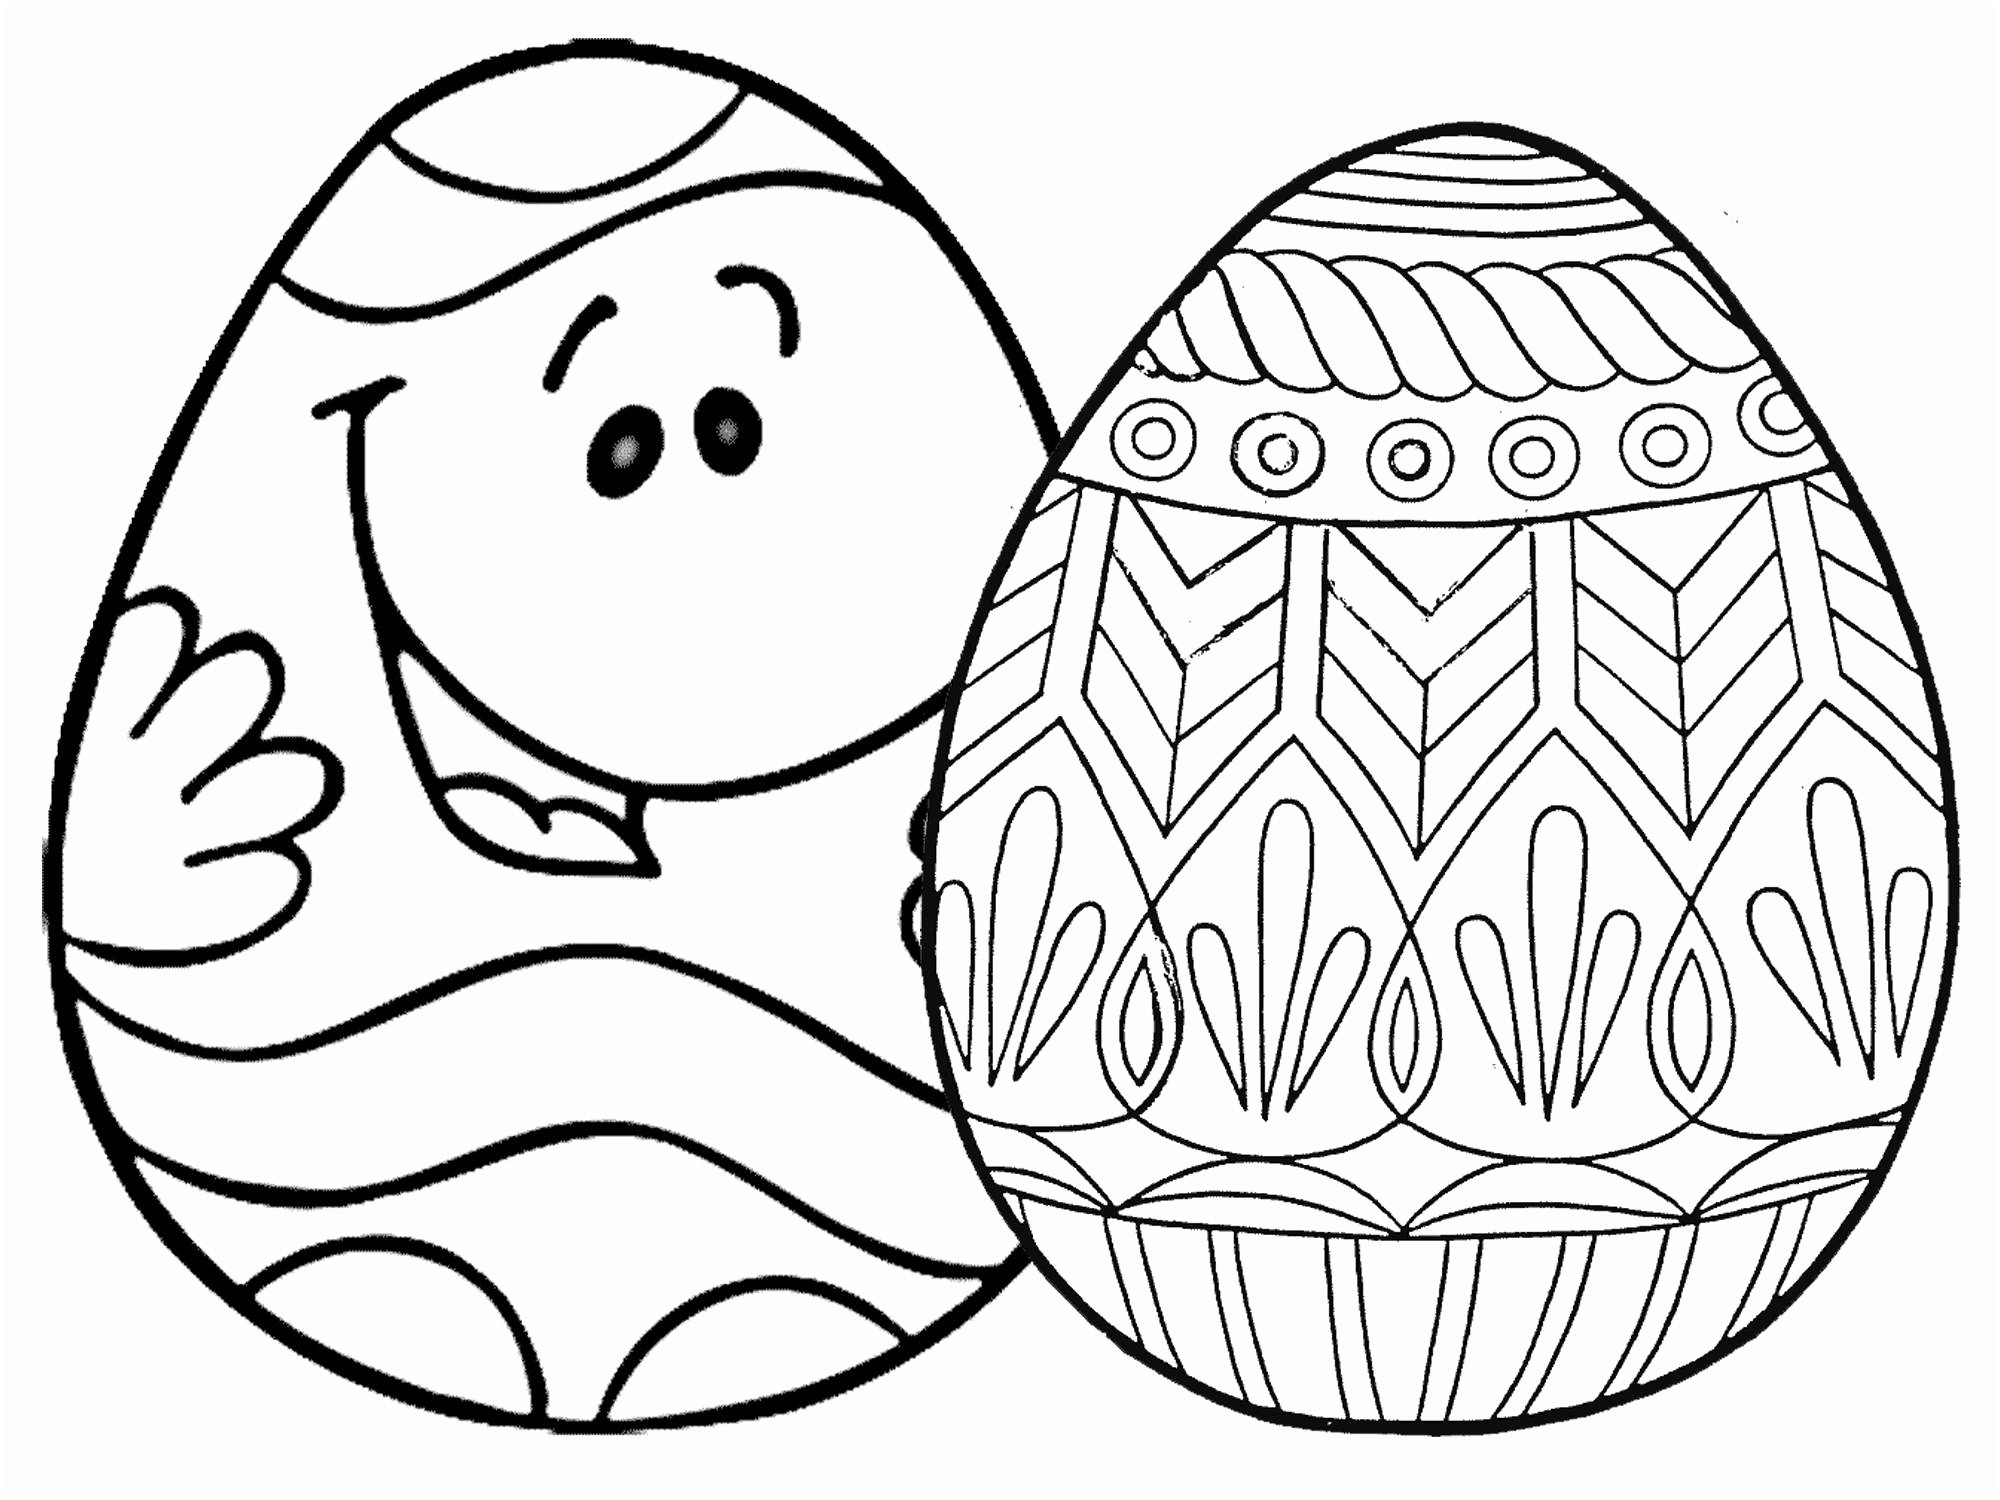 easter egg coloring pages for toddlers Download-Easter Coloring Sheets Luxury Cool Awesome Easter Coloring Pages Easter Color Pages 1-s